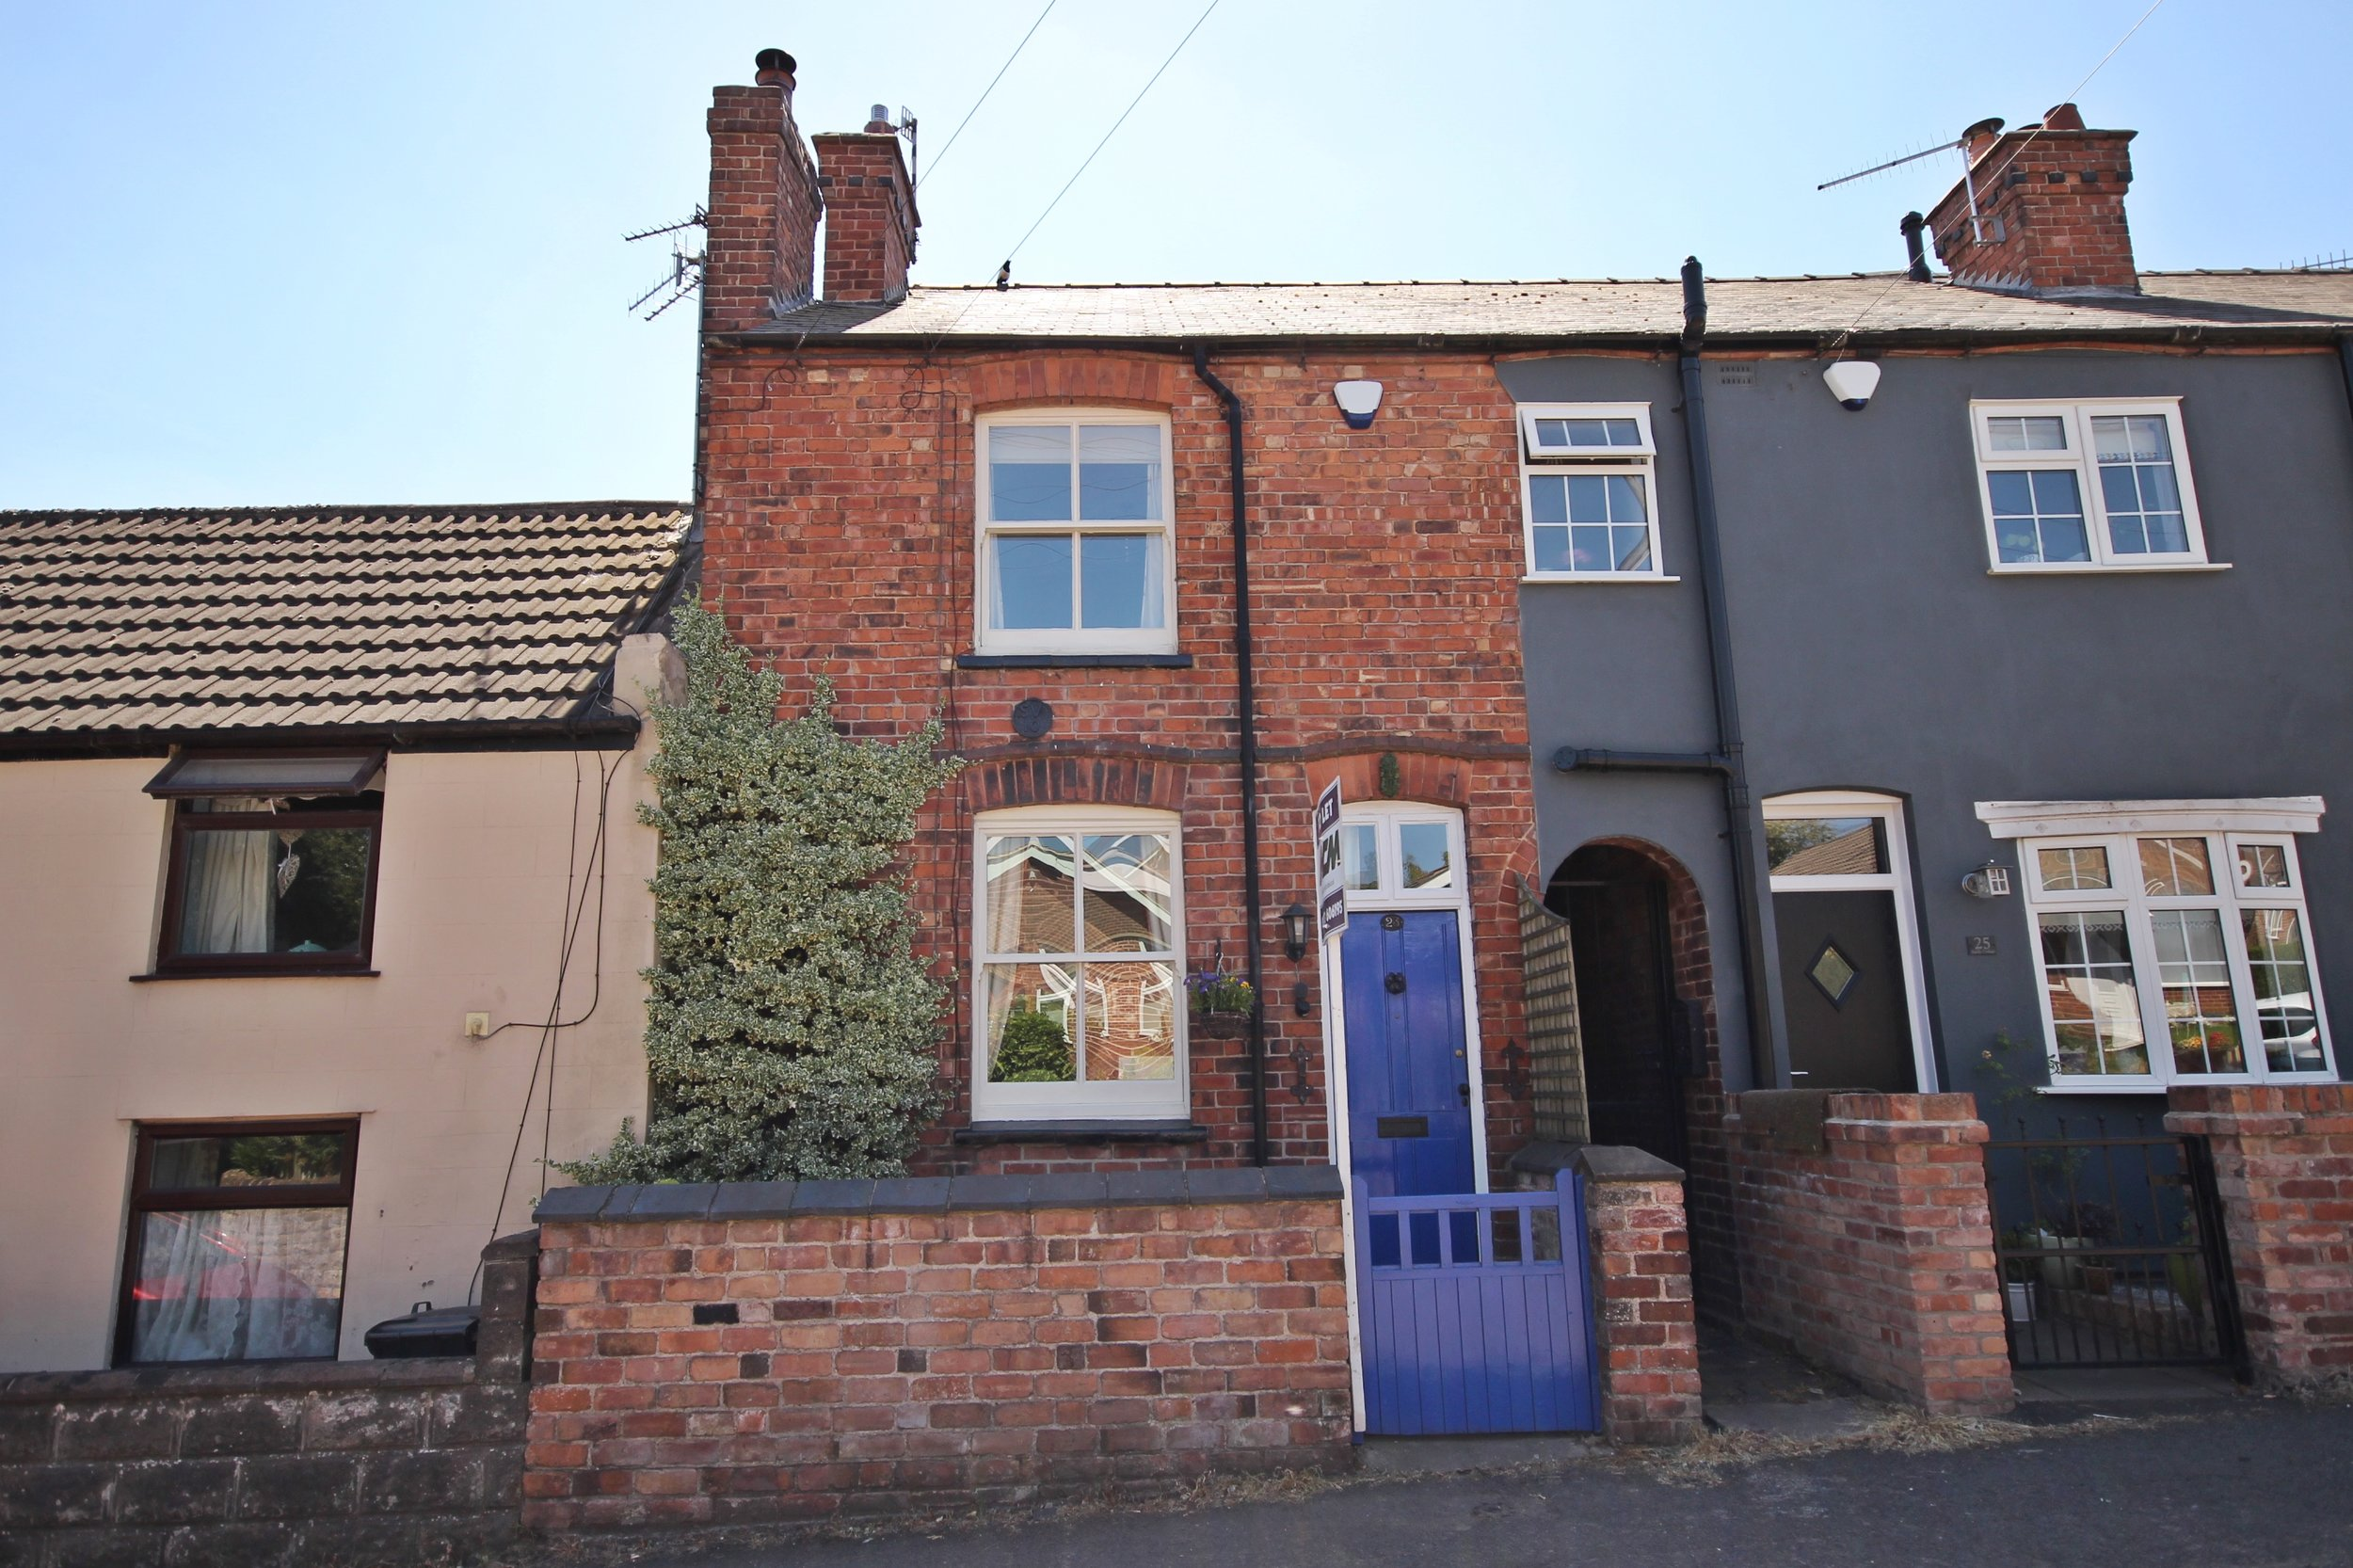 IT'S GONE!£525pcm Hardy Street, Kimberley, Nottinghamshire, NG16 2JL2 Bedroom cottage - Charming two bedroom cottage within walking distance of the popular town of Kimberley Including a cosy lounge, spacious dining kitchen, first floor bathroom and private rear courtyard garden. Employed / retired applicants preferred. Cat may be considered. EPC rating D.